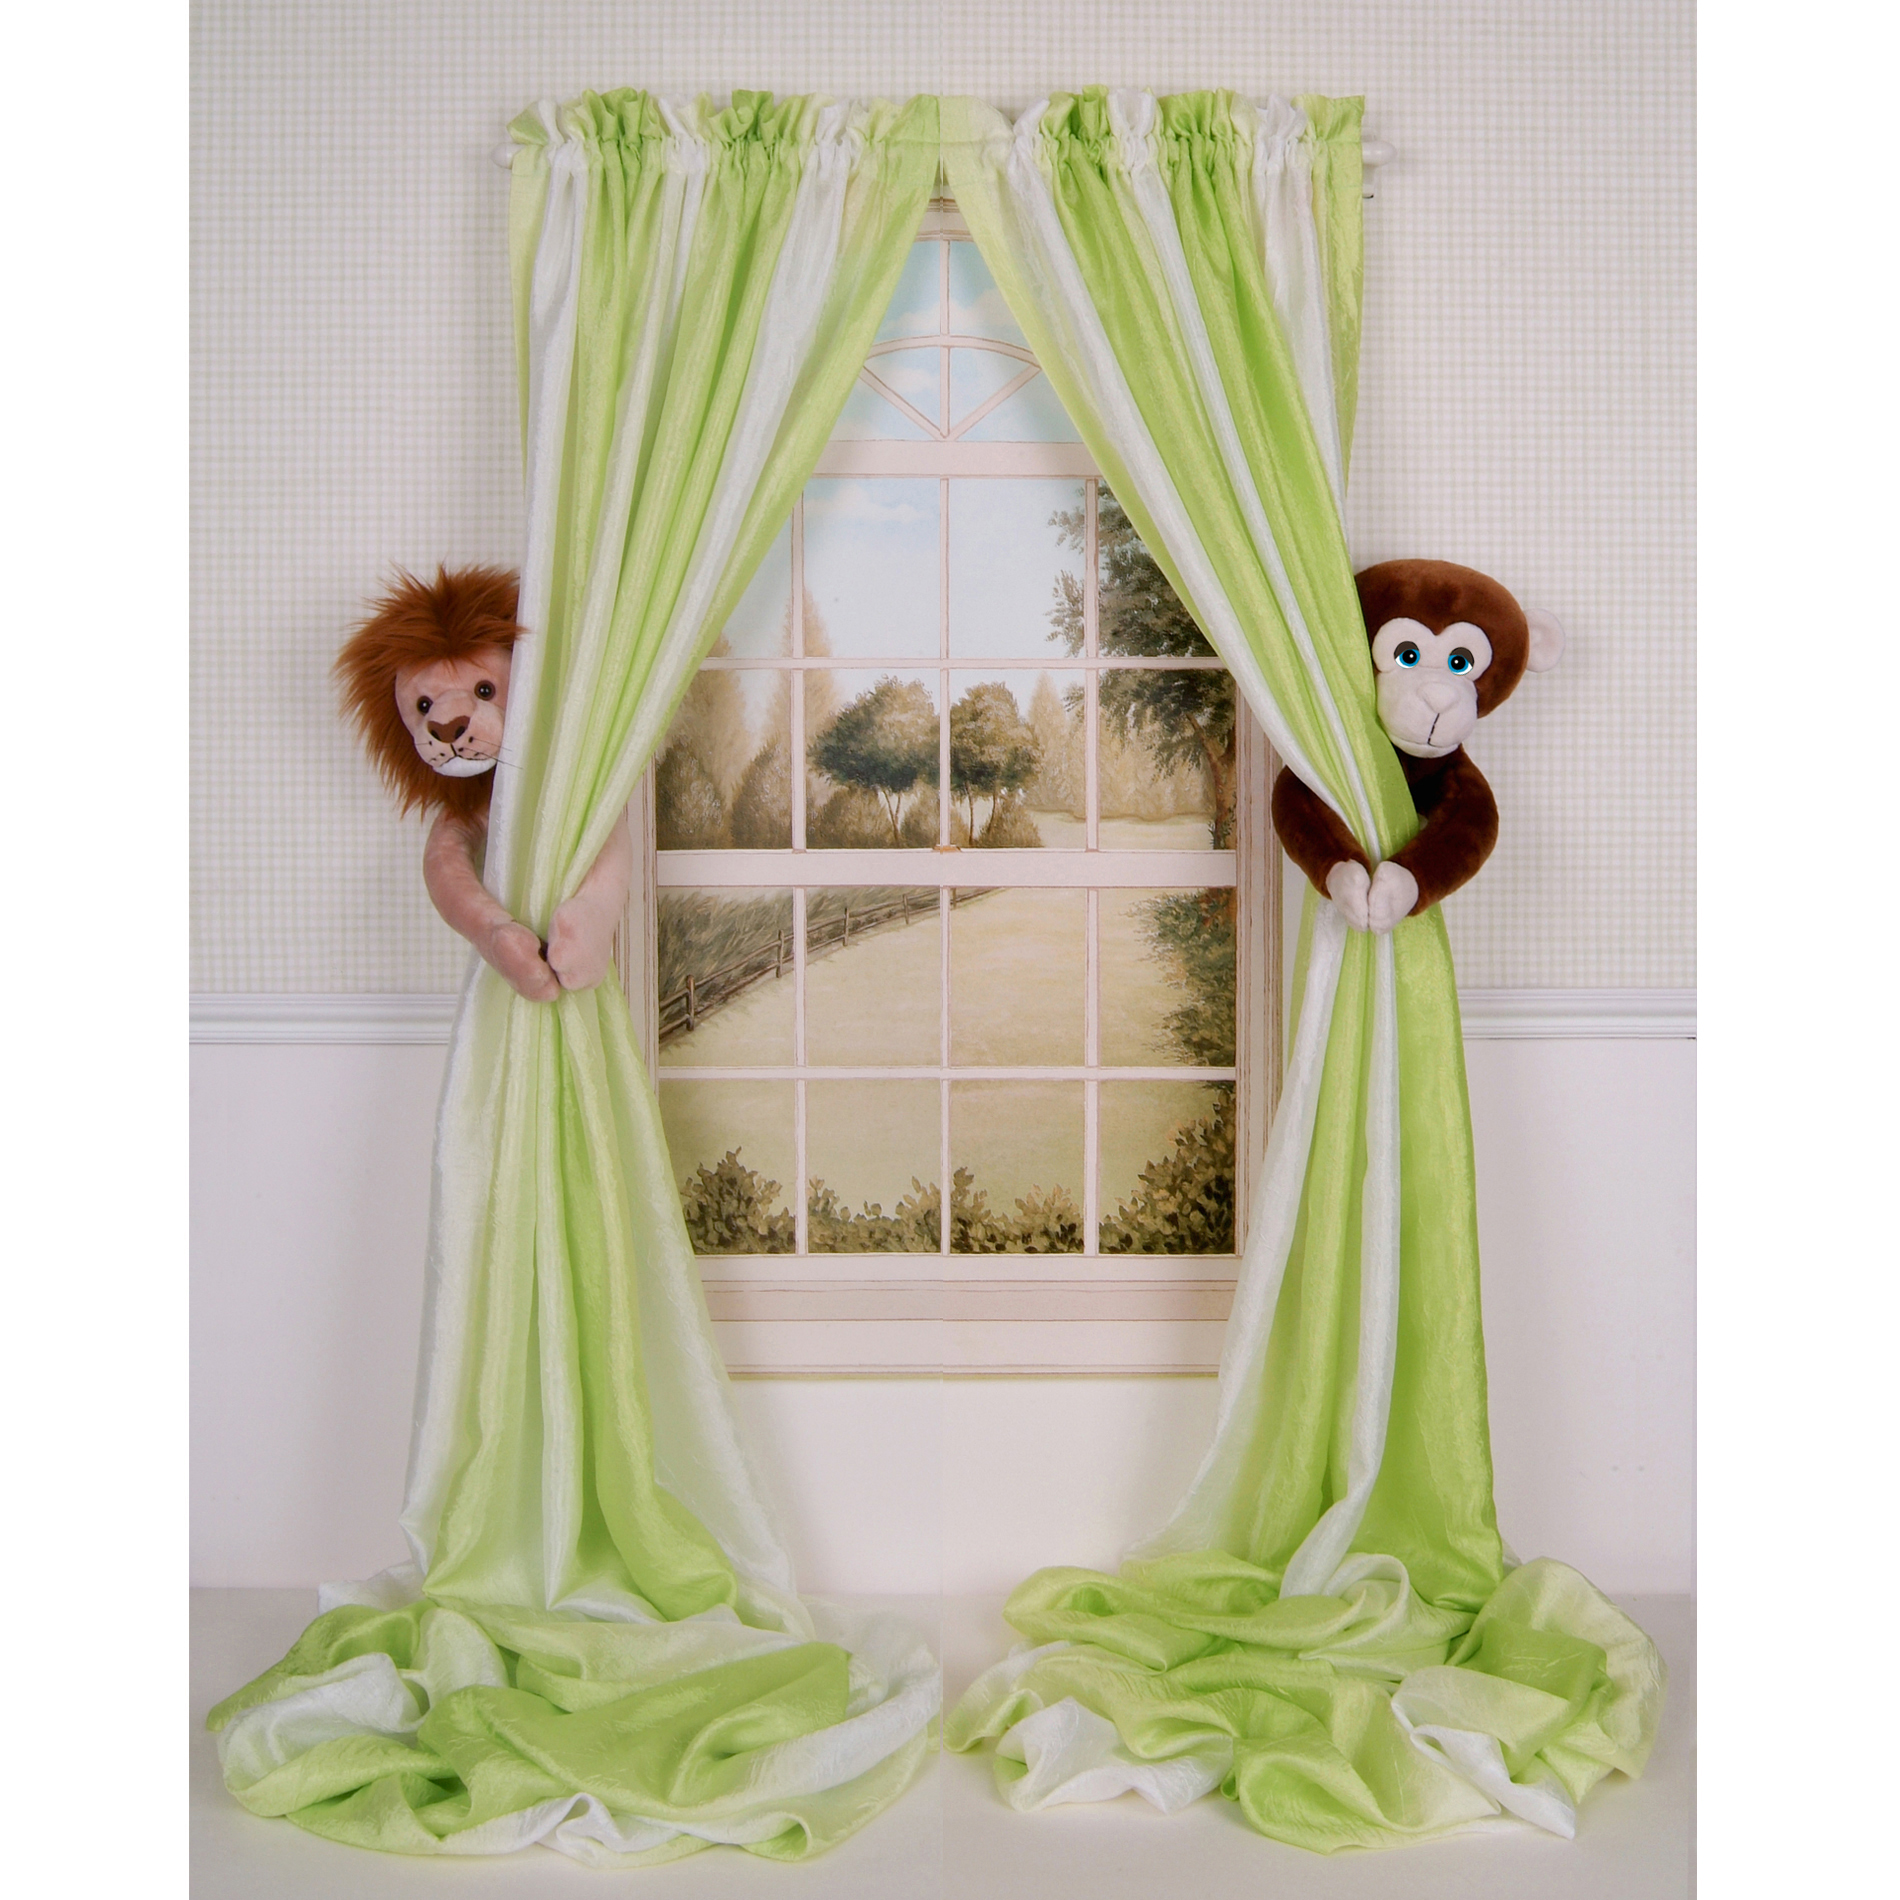 Curtain Critters Baby Nursery Jungle Lion and Monkey Curtain Tie Backs